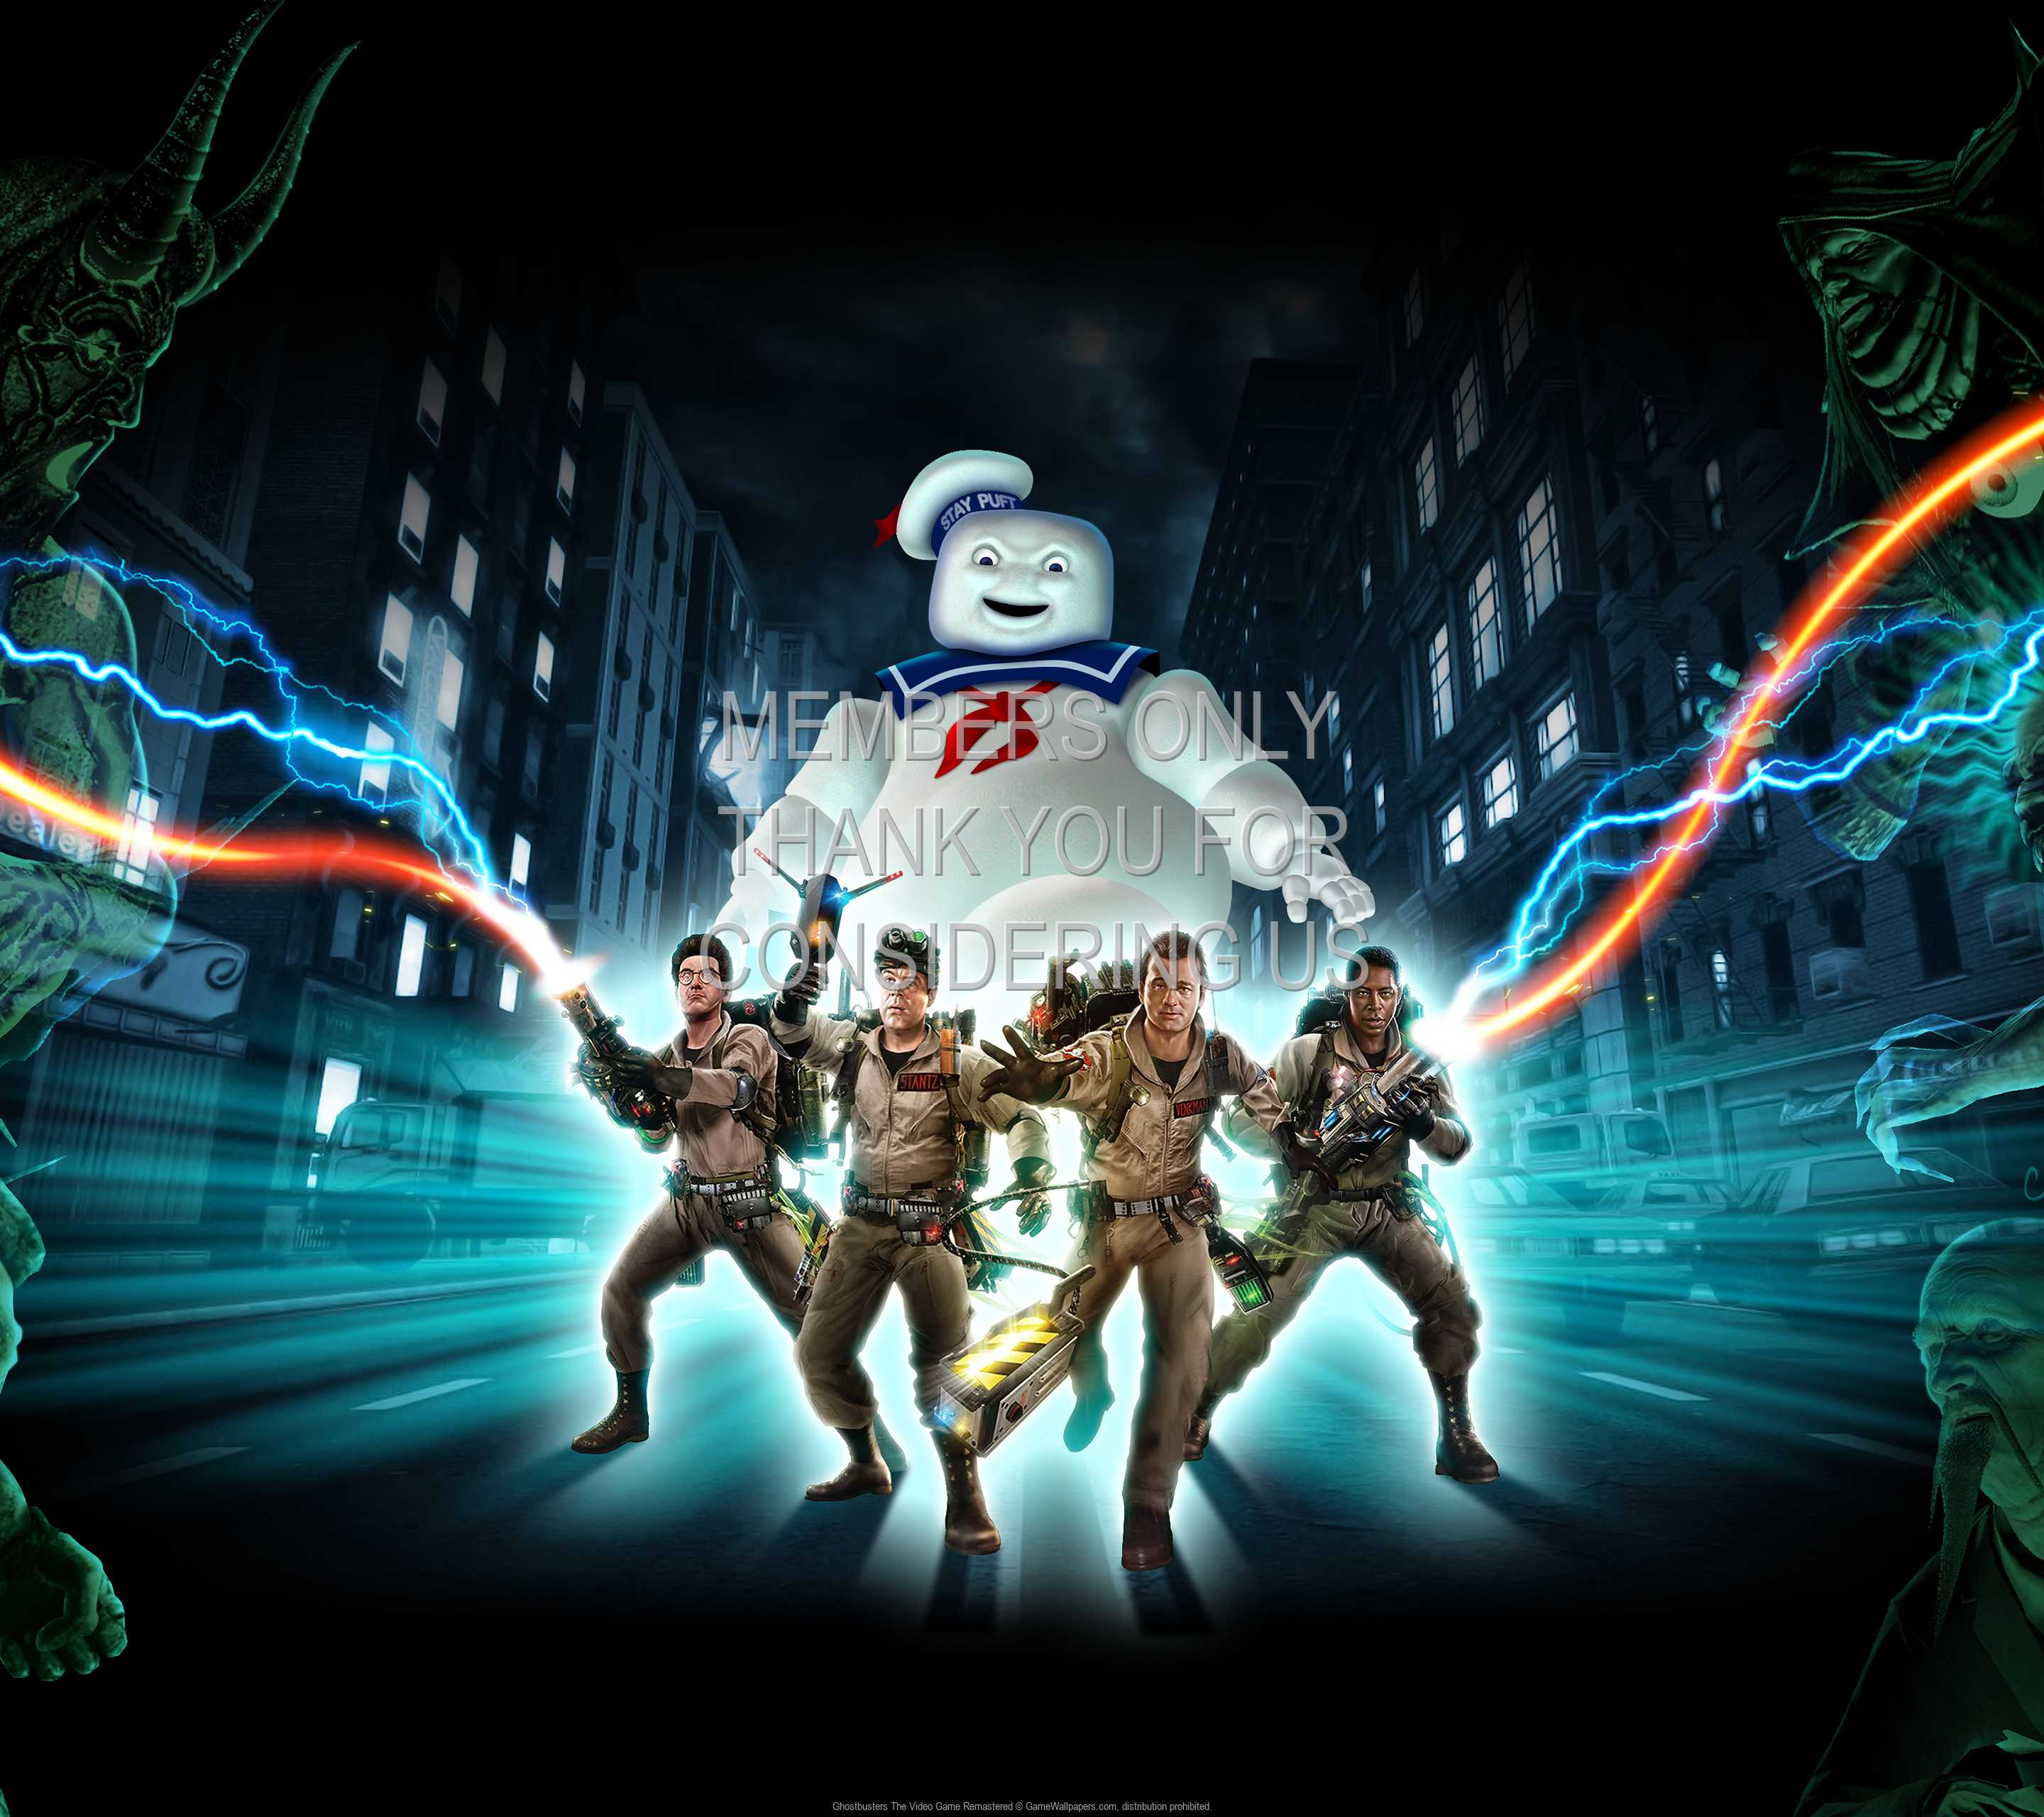 Ghostbusters: The Video Game Remastered 1440p Horizontal Handy Hintergrundbild 01